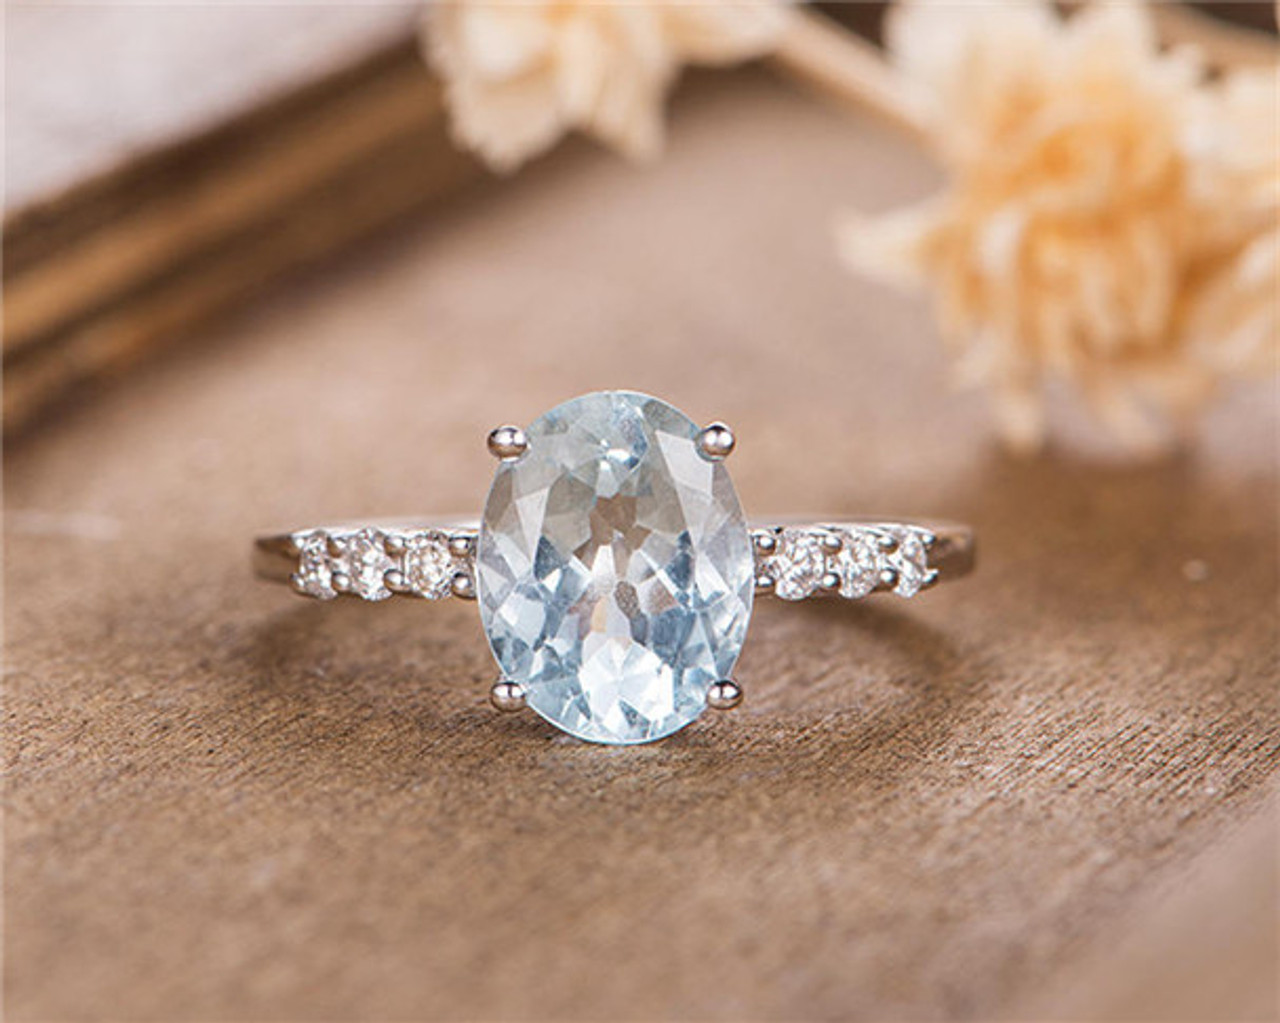 Simple Wedding Ring.White Gold Aquamarine Engagement Ring Bridal Ring Solitaire Oval Cut Half Eternity Diamond Simple Wedding Ring